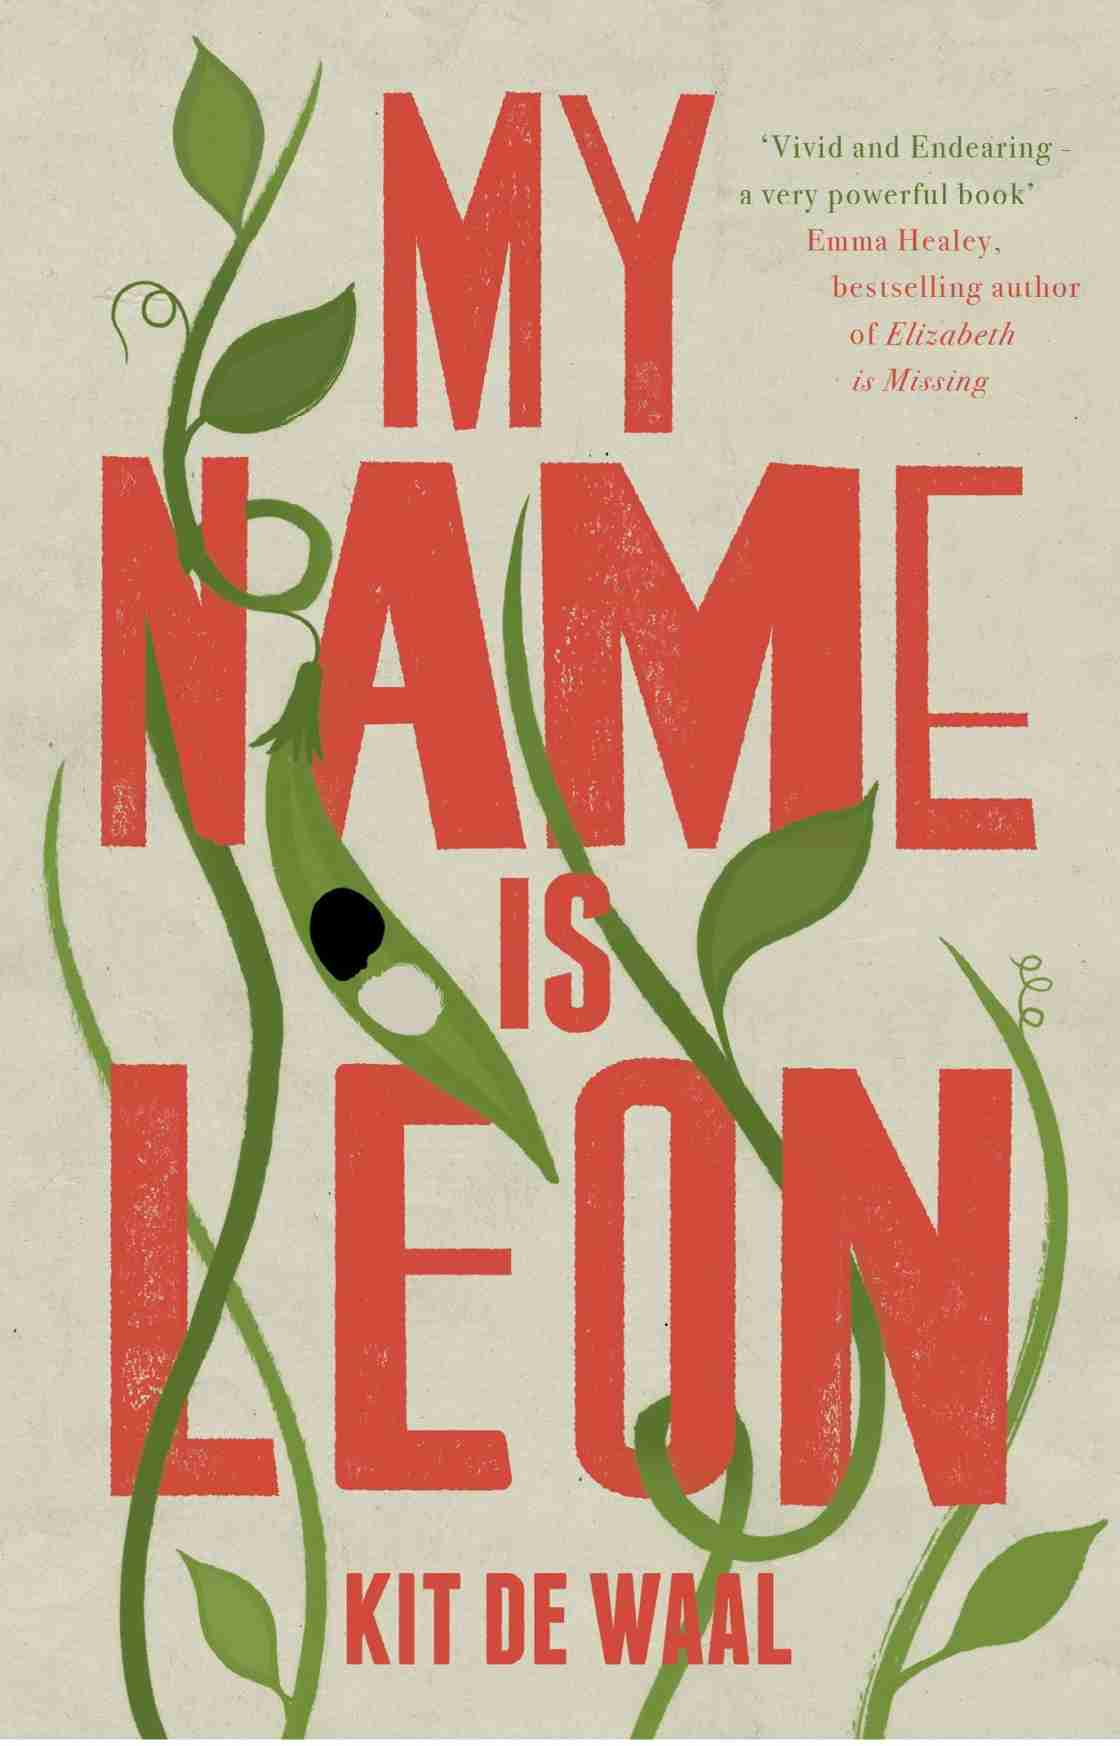 My Name is Leon by Kit de Waal - Big Read 2017 winner